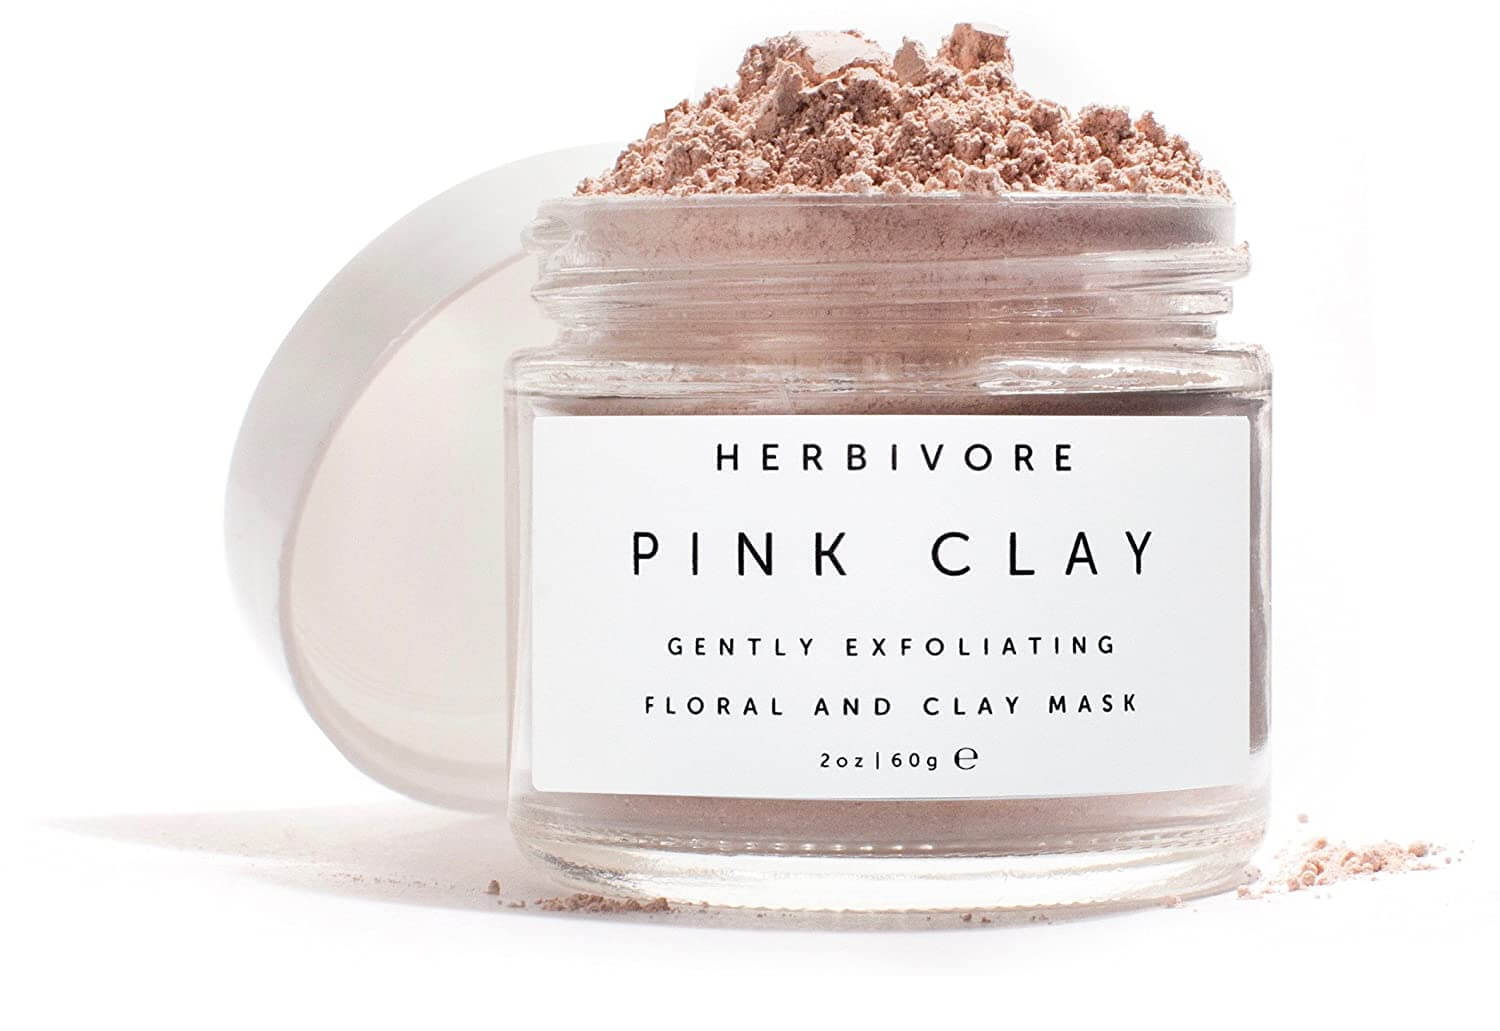 Herbivore Pink Clay Exfoliating Clay Mask